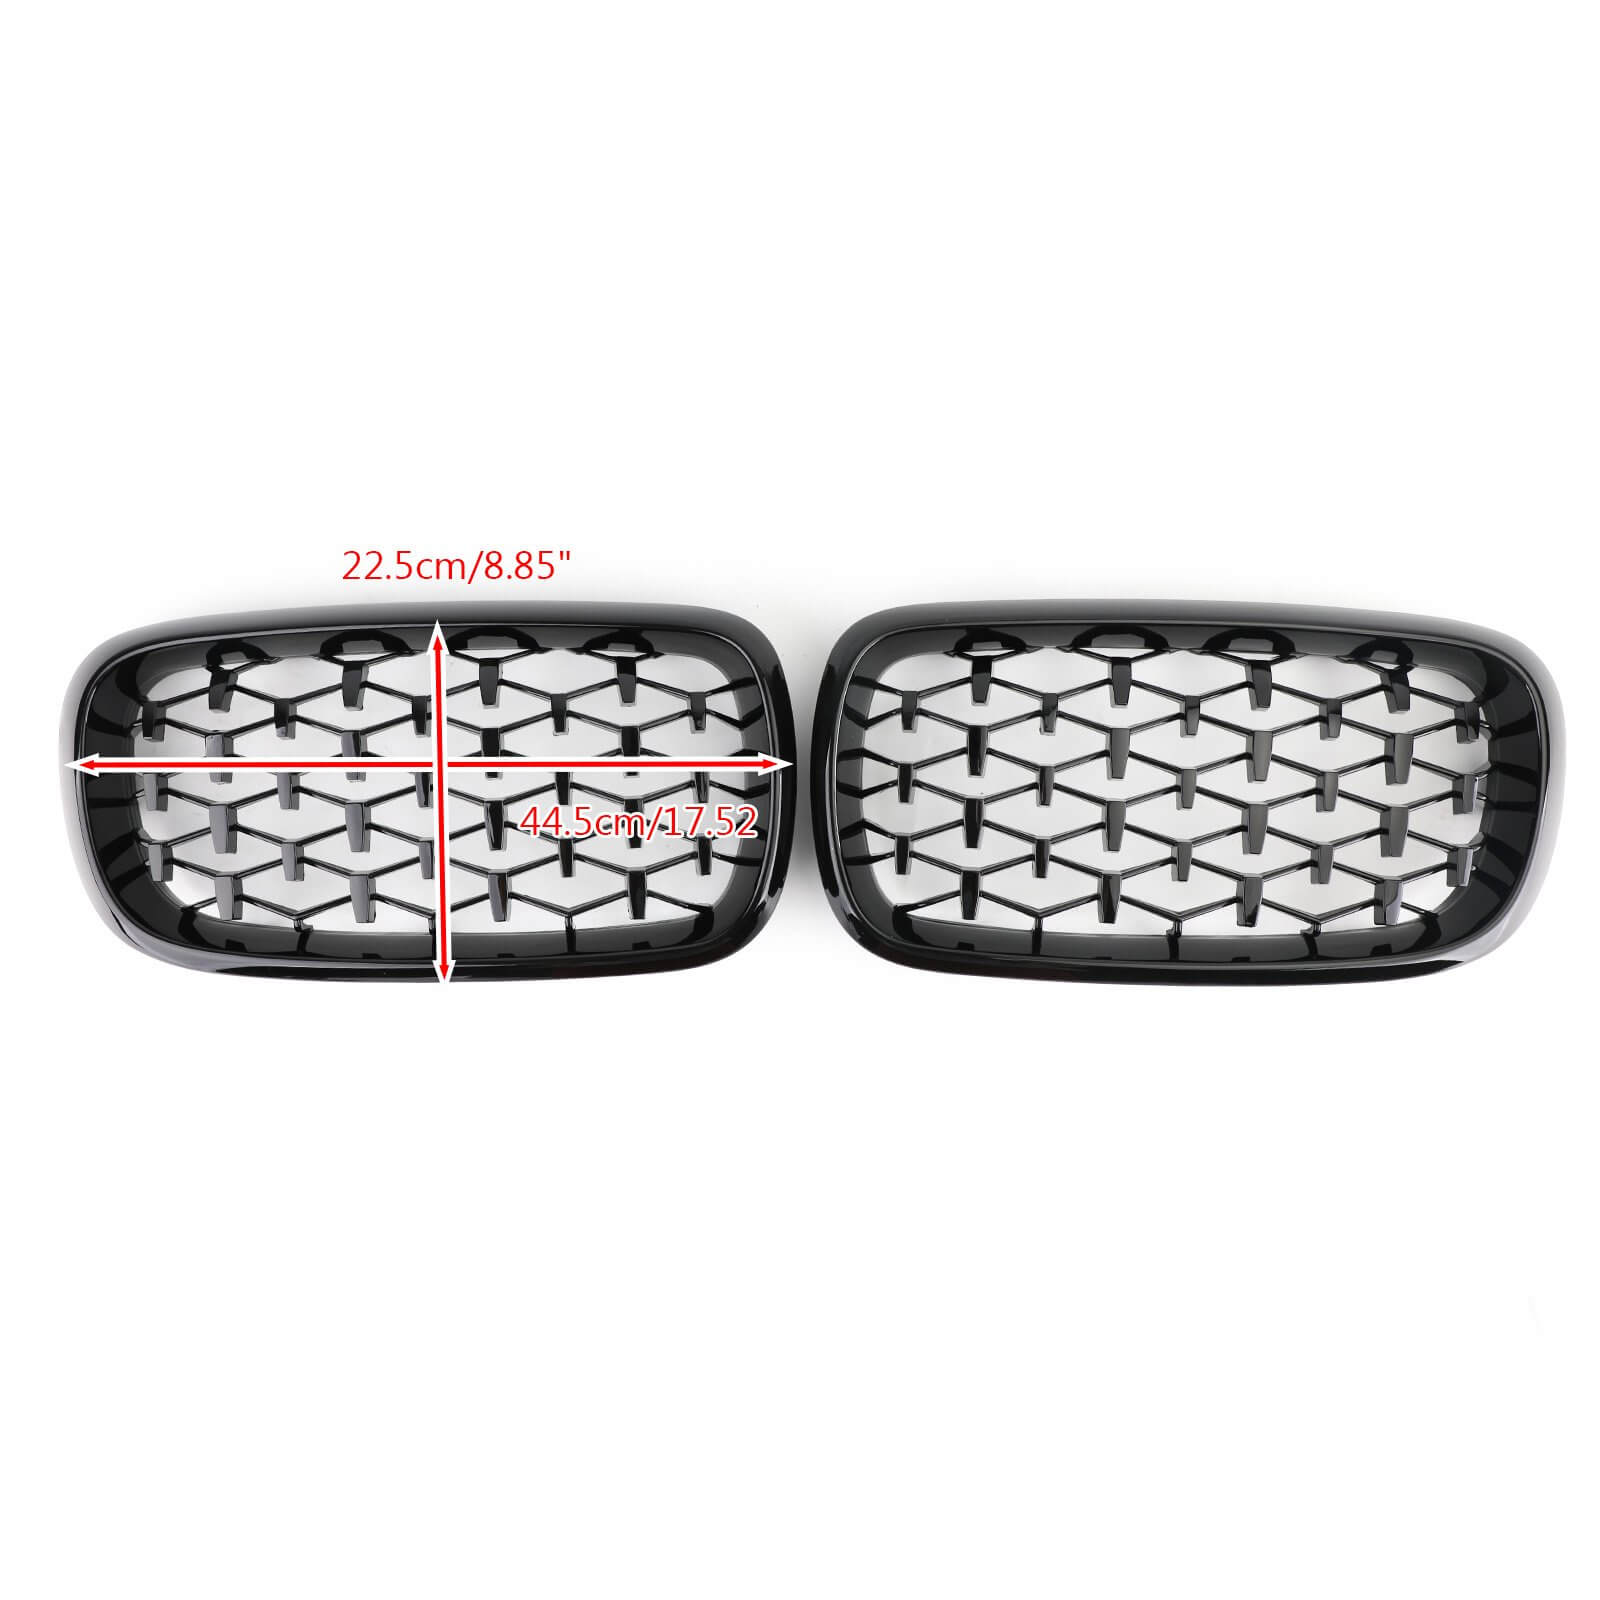 Meteor Black Front Kidney Grille Grill For 2014-2016 BMW X5 F15 Generic